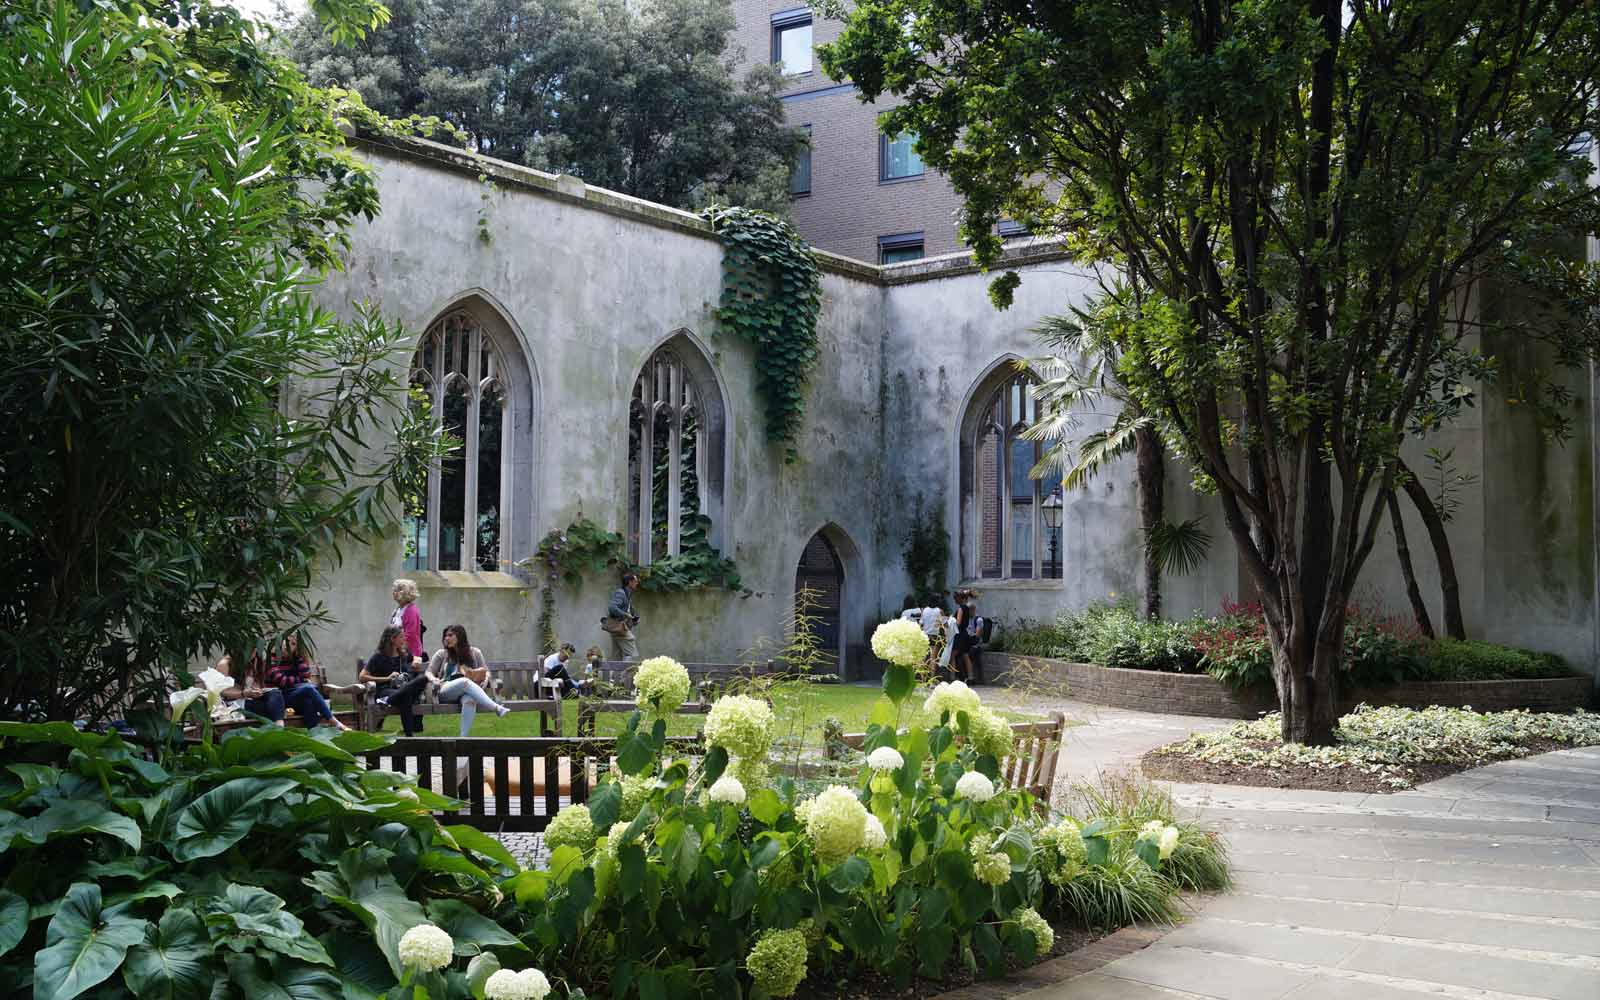 St. Dunstan in the East in London